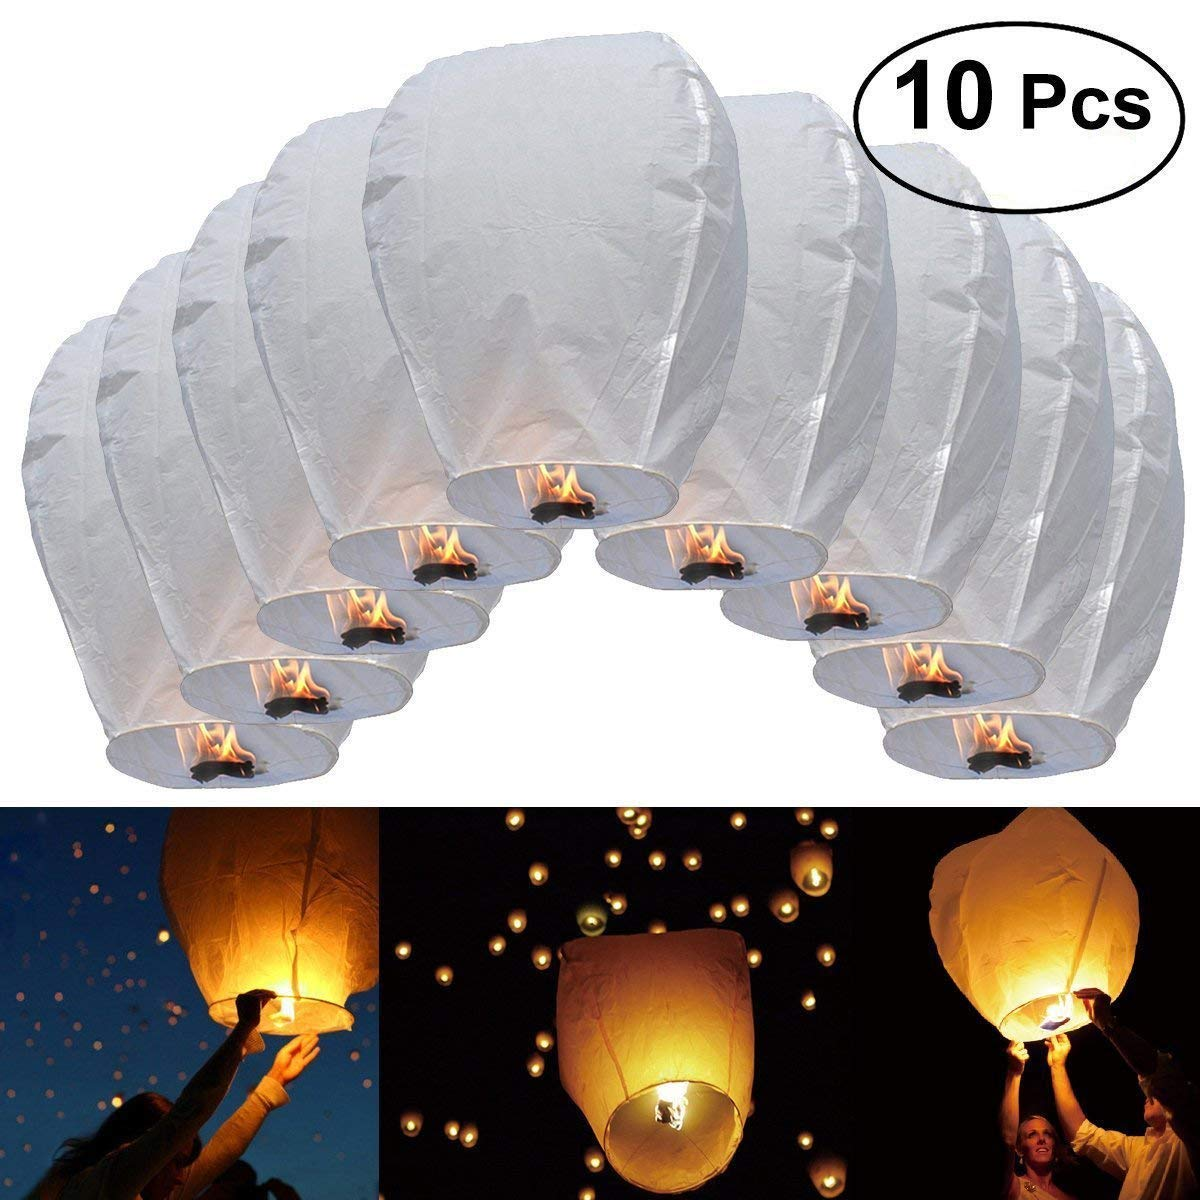 10 Blue Chinese Wishing Sky Lanterns for Special Occasions, Wedding, Birthday, Party, with Non drip Fuel Cell … with Non drip Fuel Cell ... Partyrama